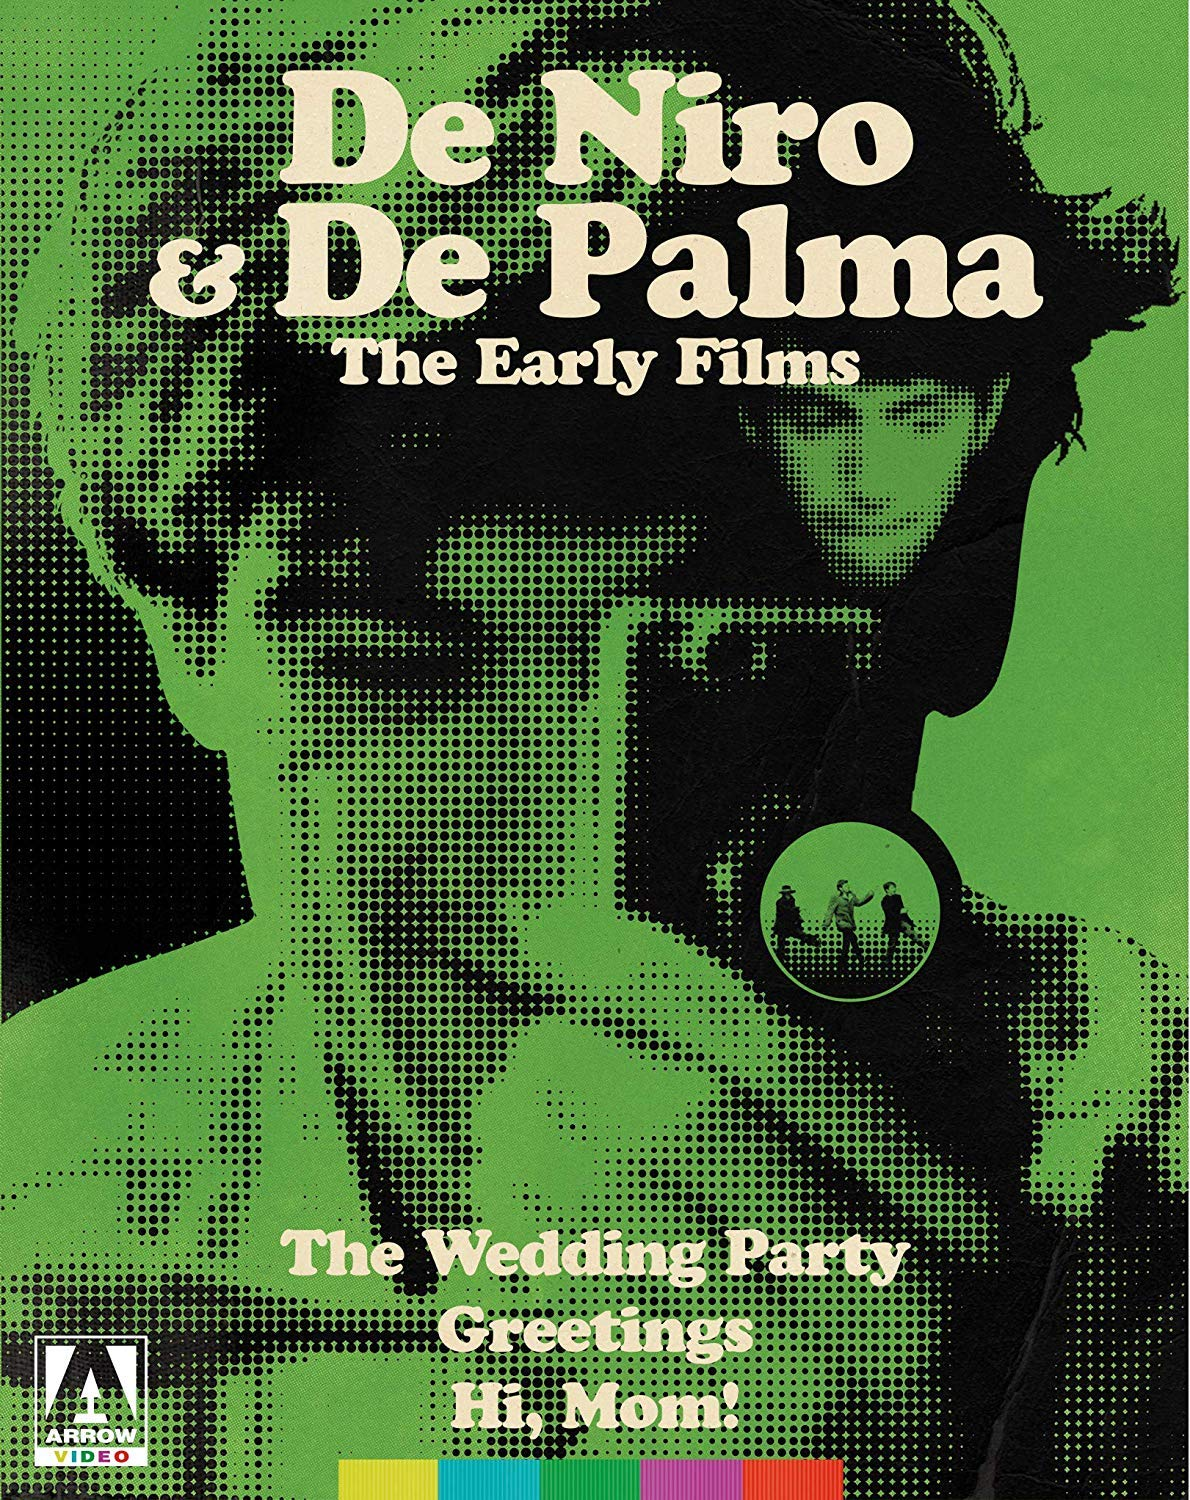 De Palma & De Niro: The Early Films (The Wedding Party, Greetings, Hi Mom!) [Blu-ray]